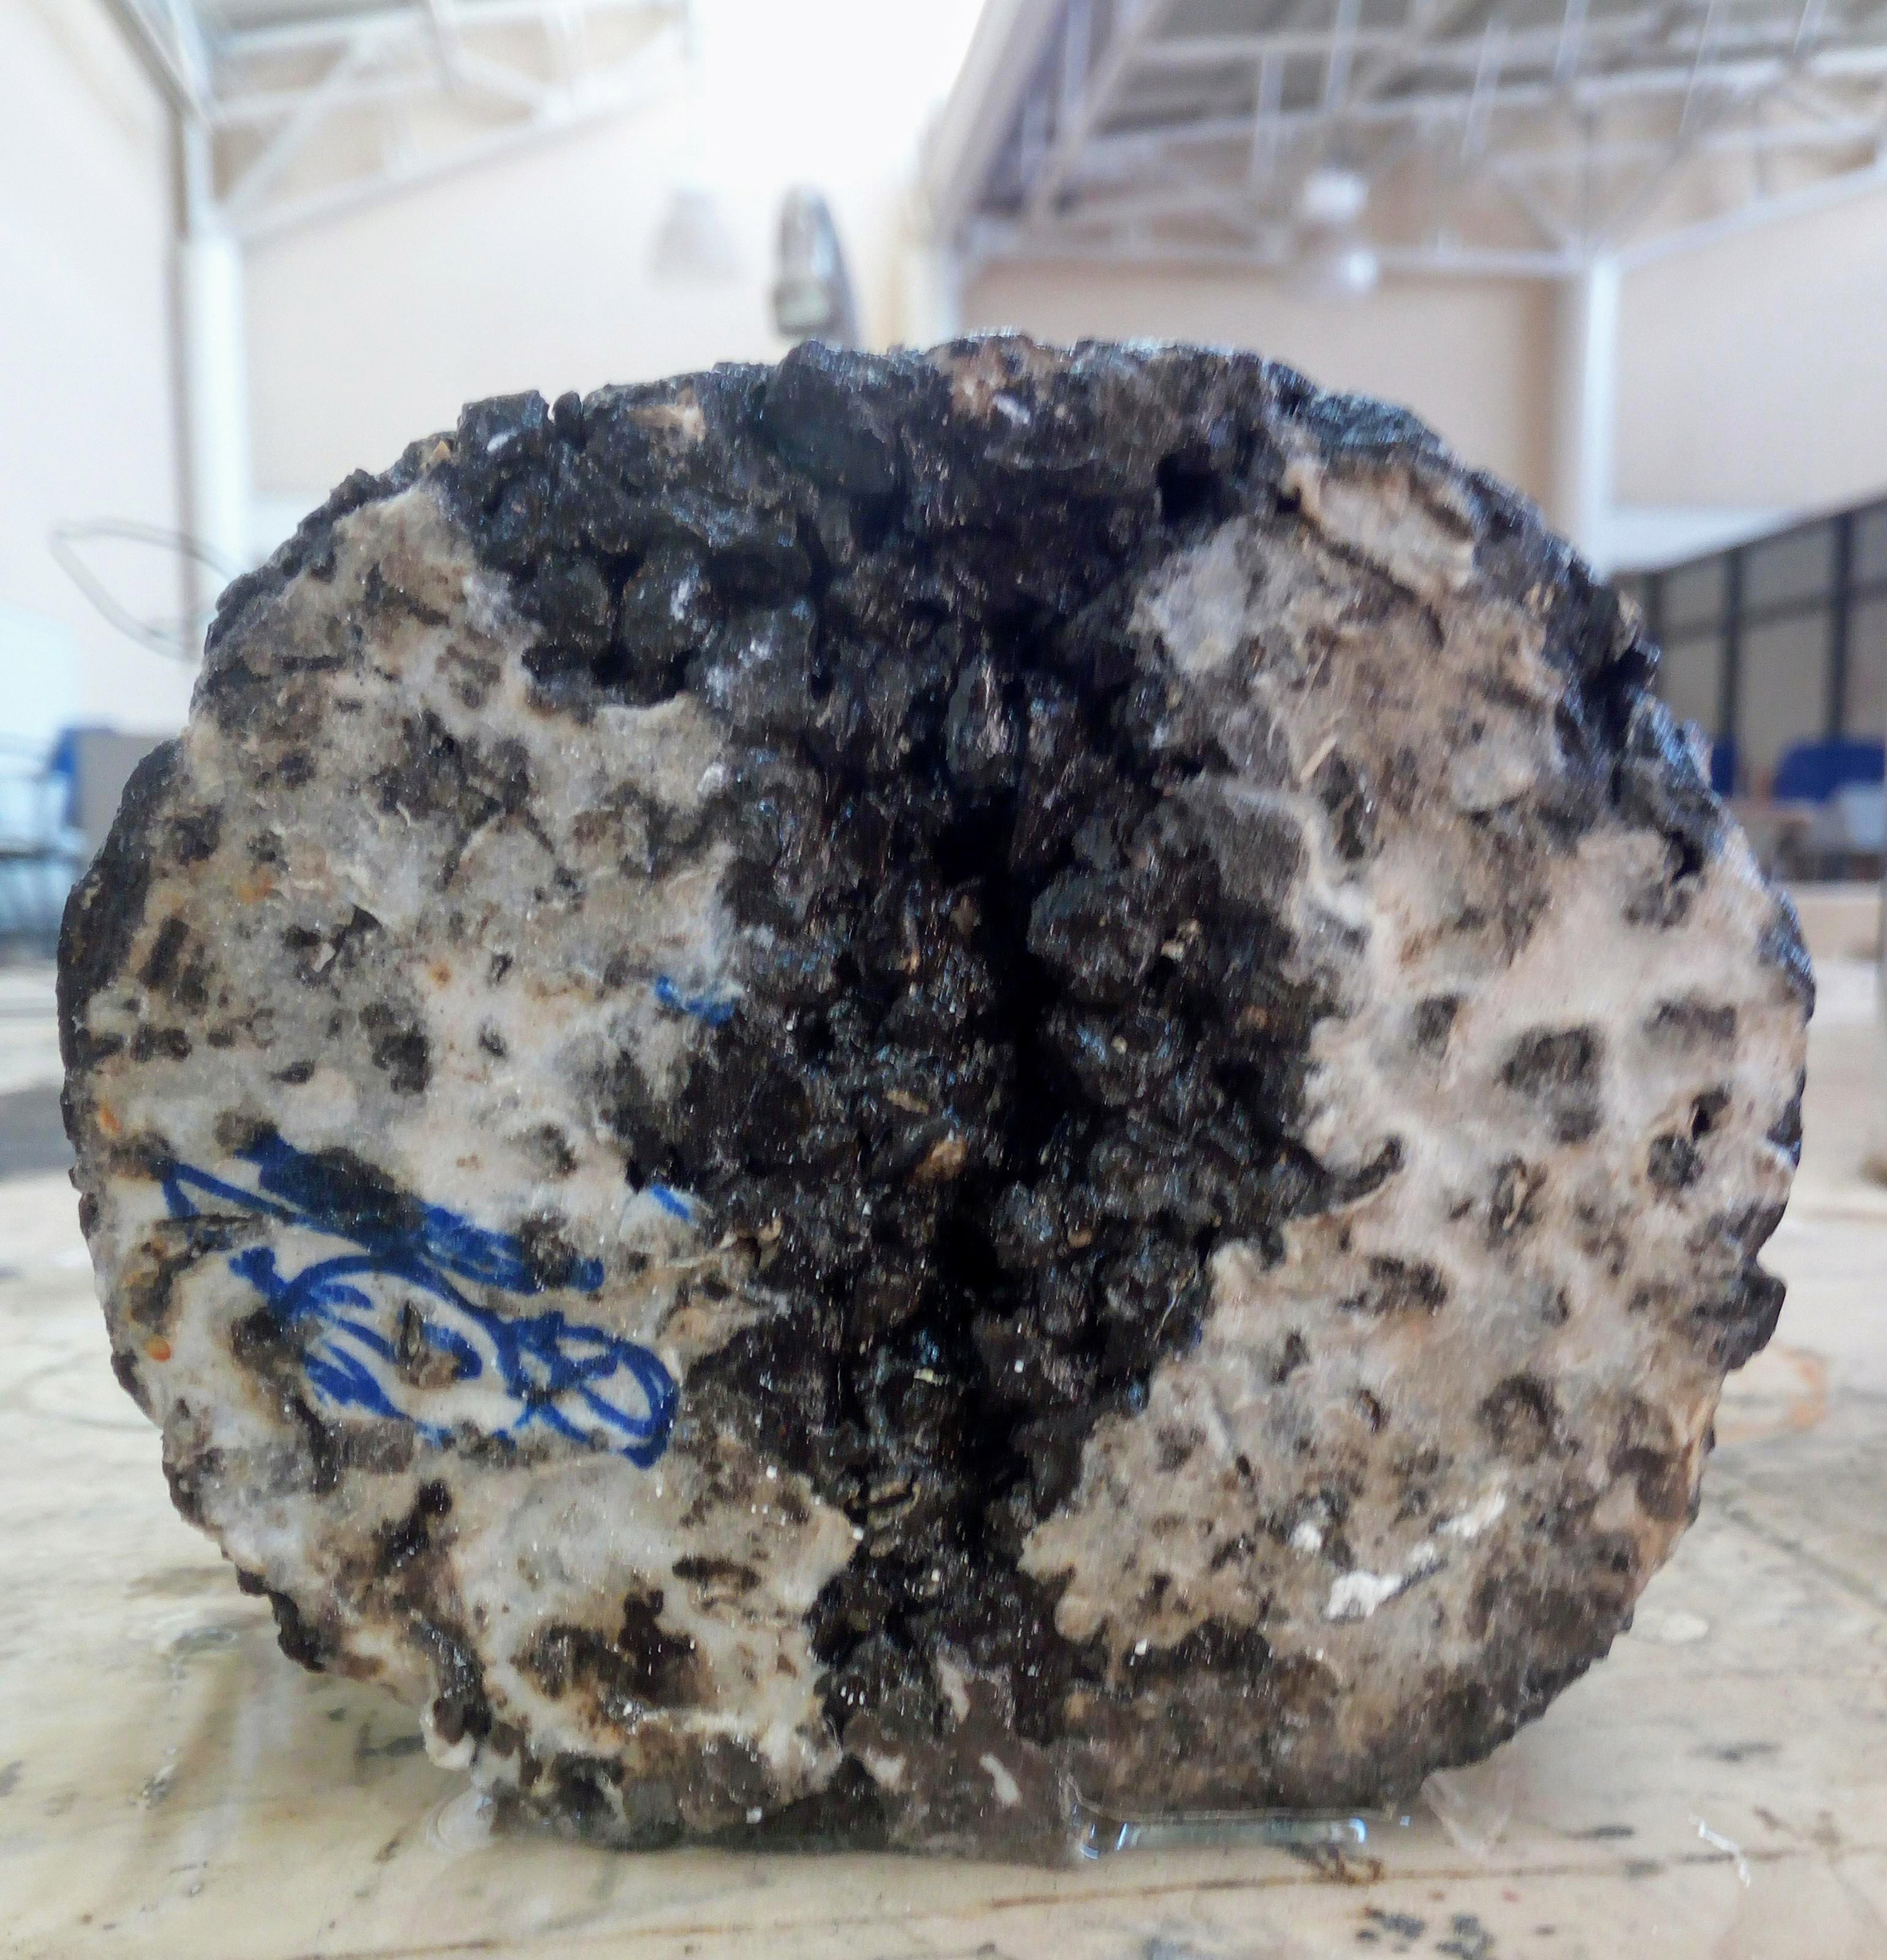 Recycled tyres form pavement that self-repairs when it rains